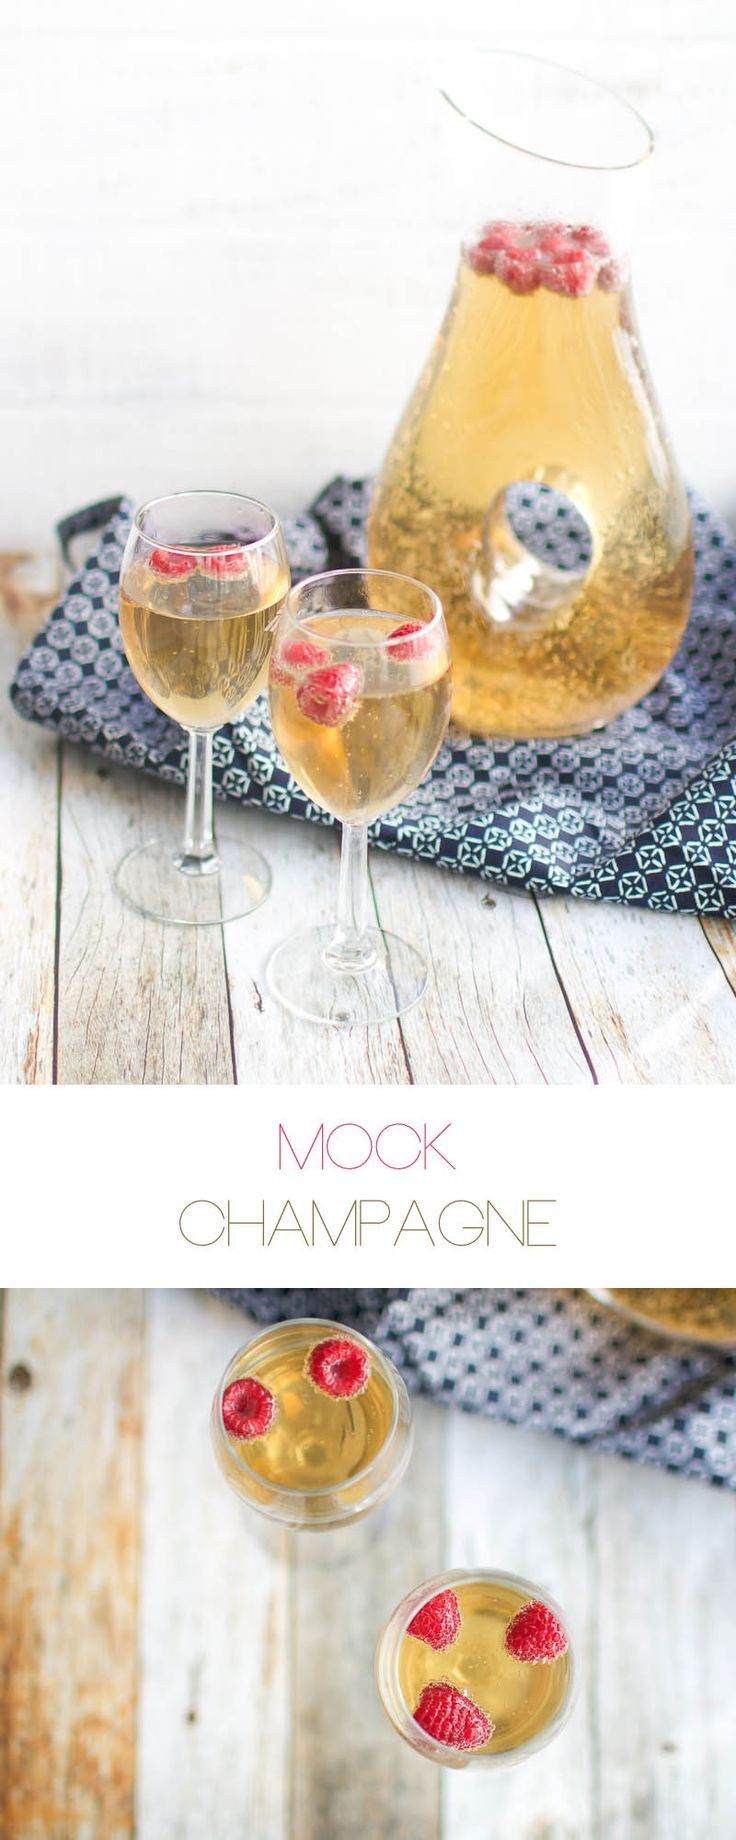 Mock-Champagne for your New Years Toast! (Non-alcoholic)   – Nonalcoholic Drink Recipes